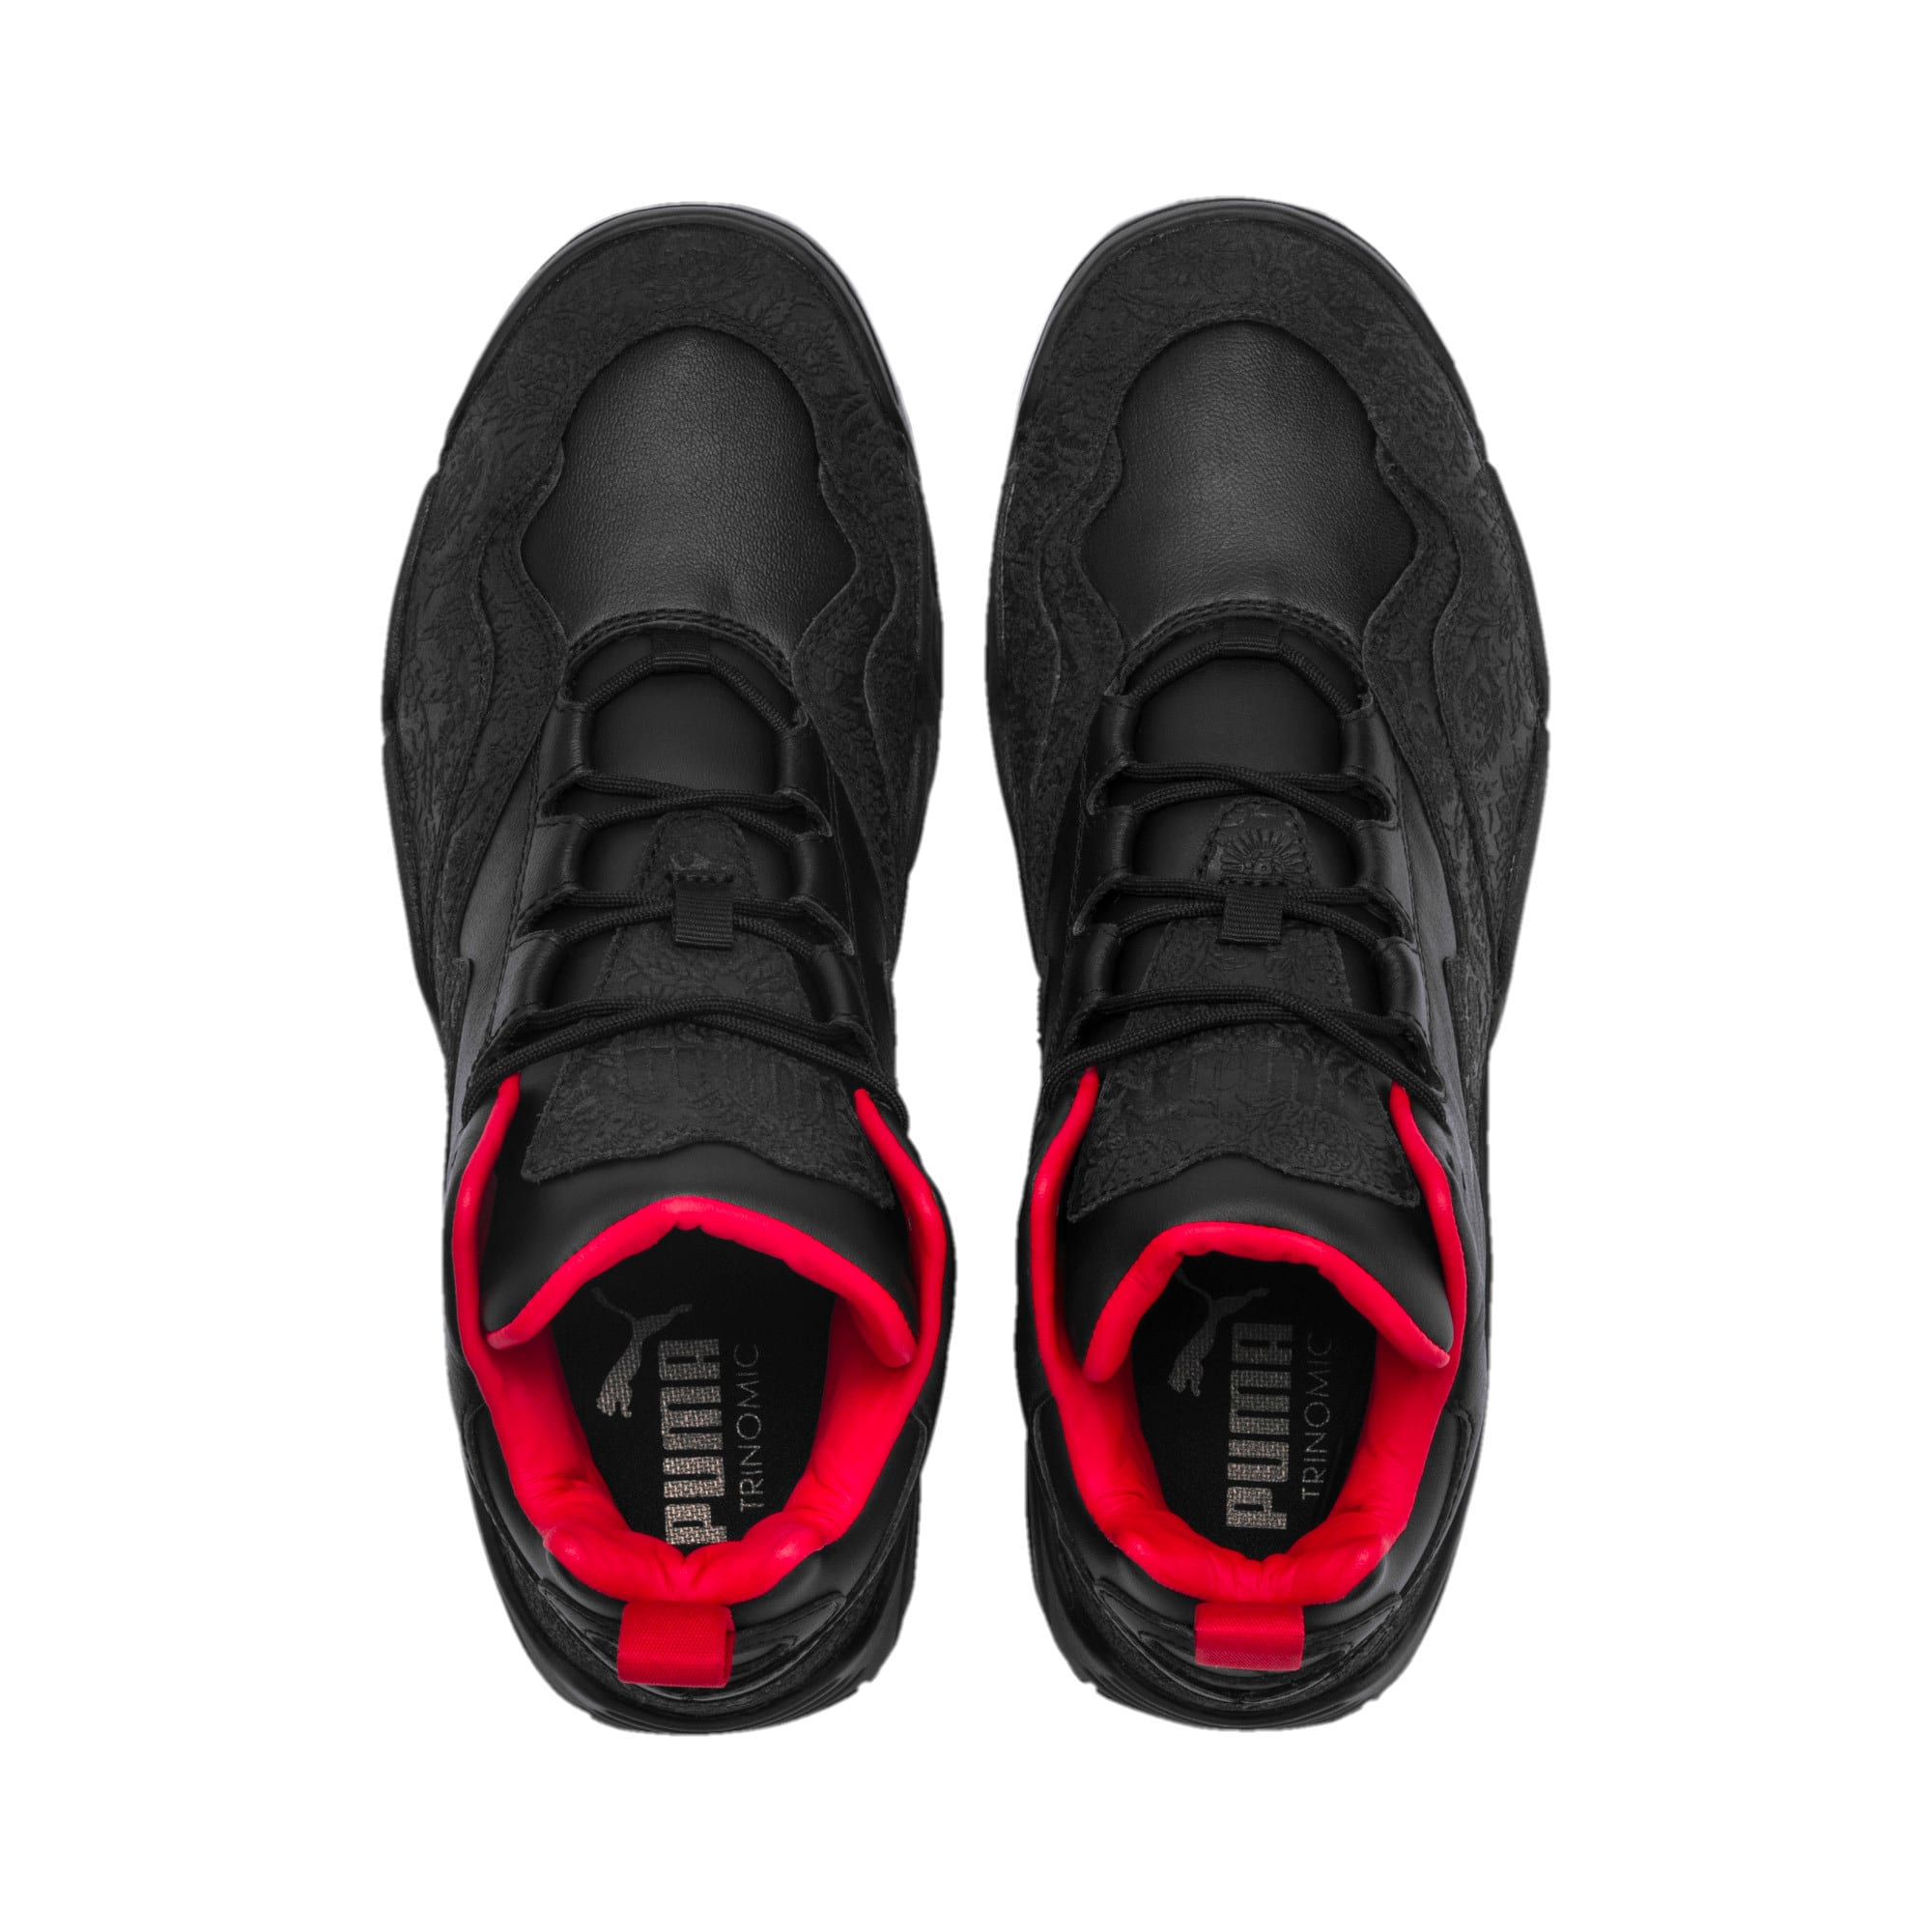 Thumbnail 7 of Source Mid World Cup Trainers, P Blk-Bronze-High Risk Red, medium-IND